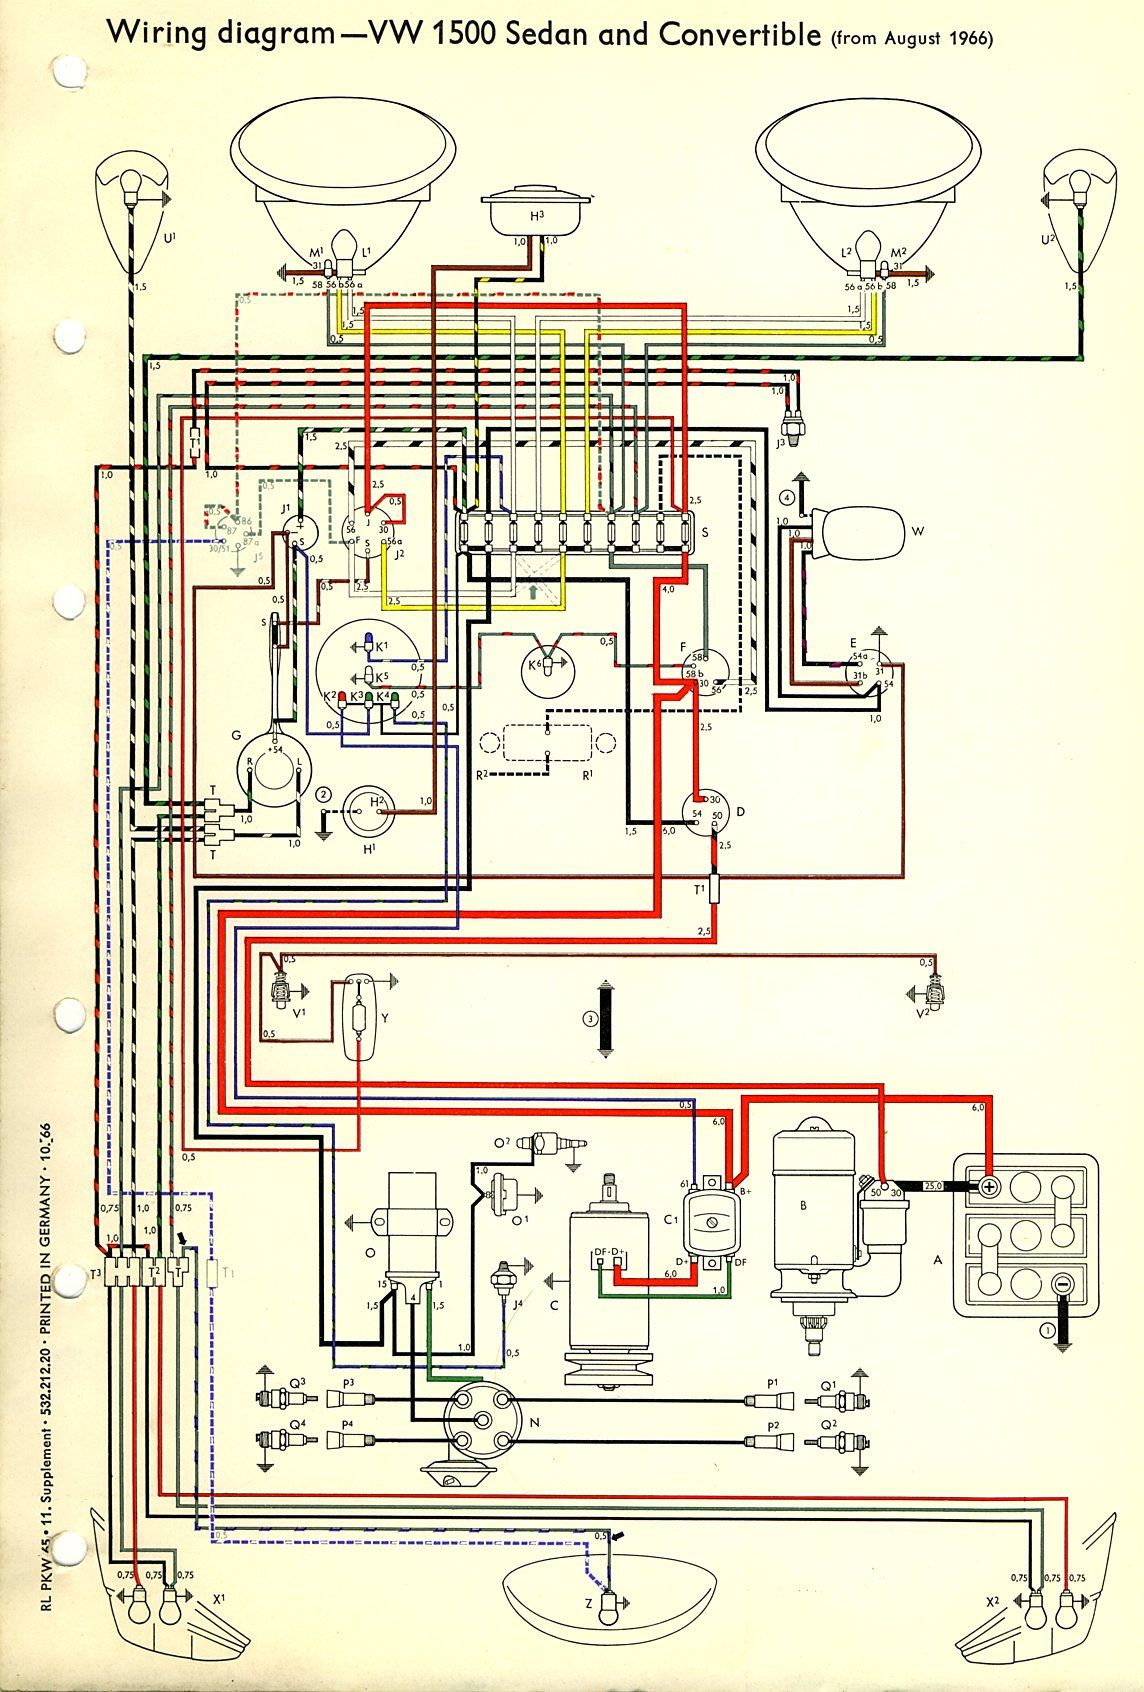 1967 Beetle Wiring Diagram Vw Bug Vw Super Beetle Vw Beetles